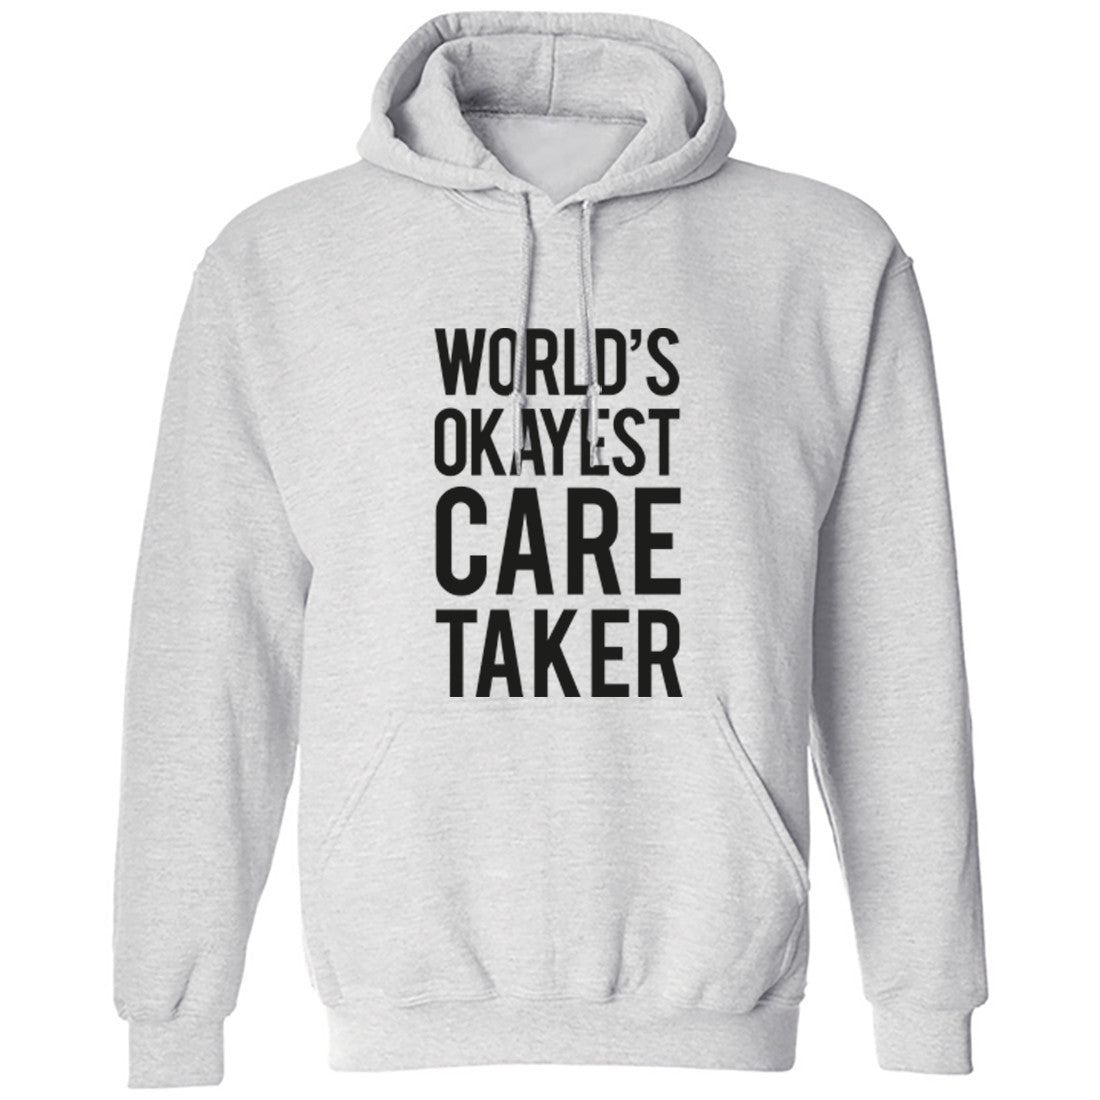 Worlds Okayest Care Taker Unisex Hoodie K0498 - Illustrated Identity Ltd.